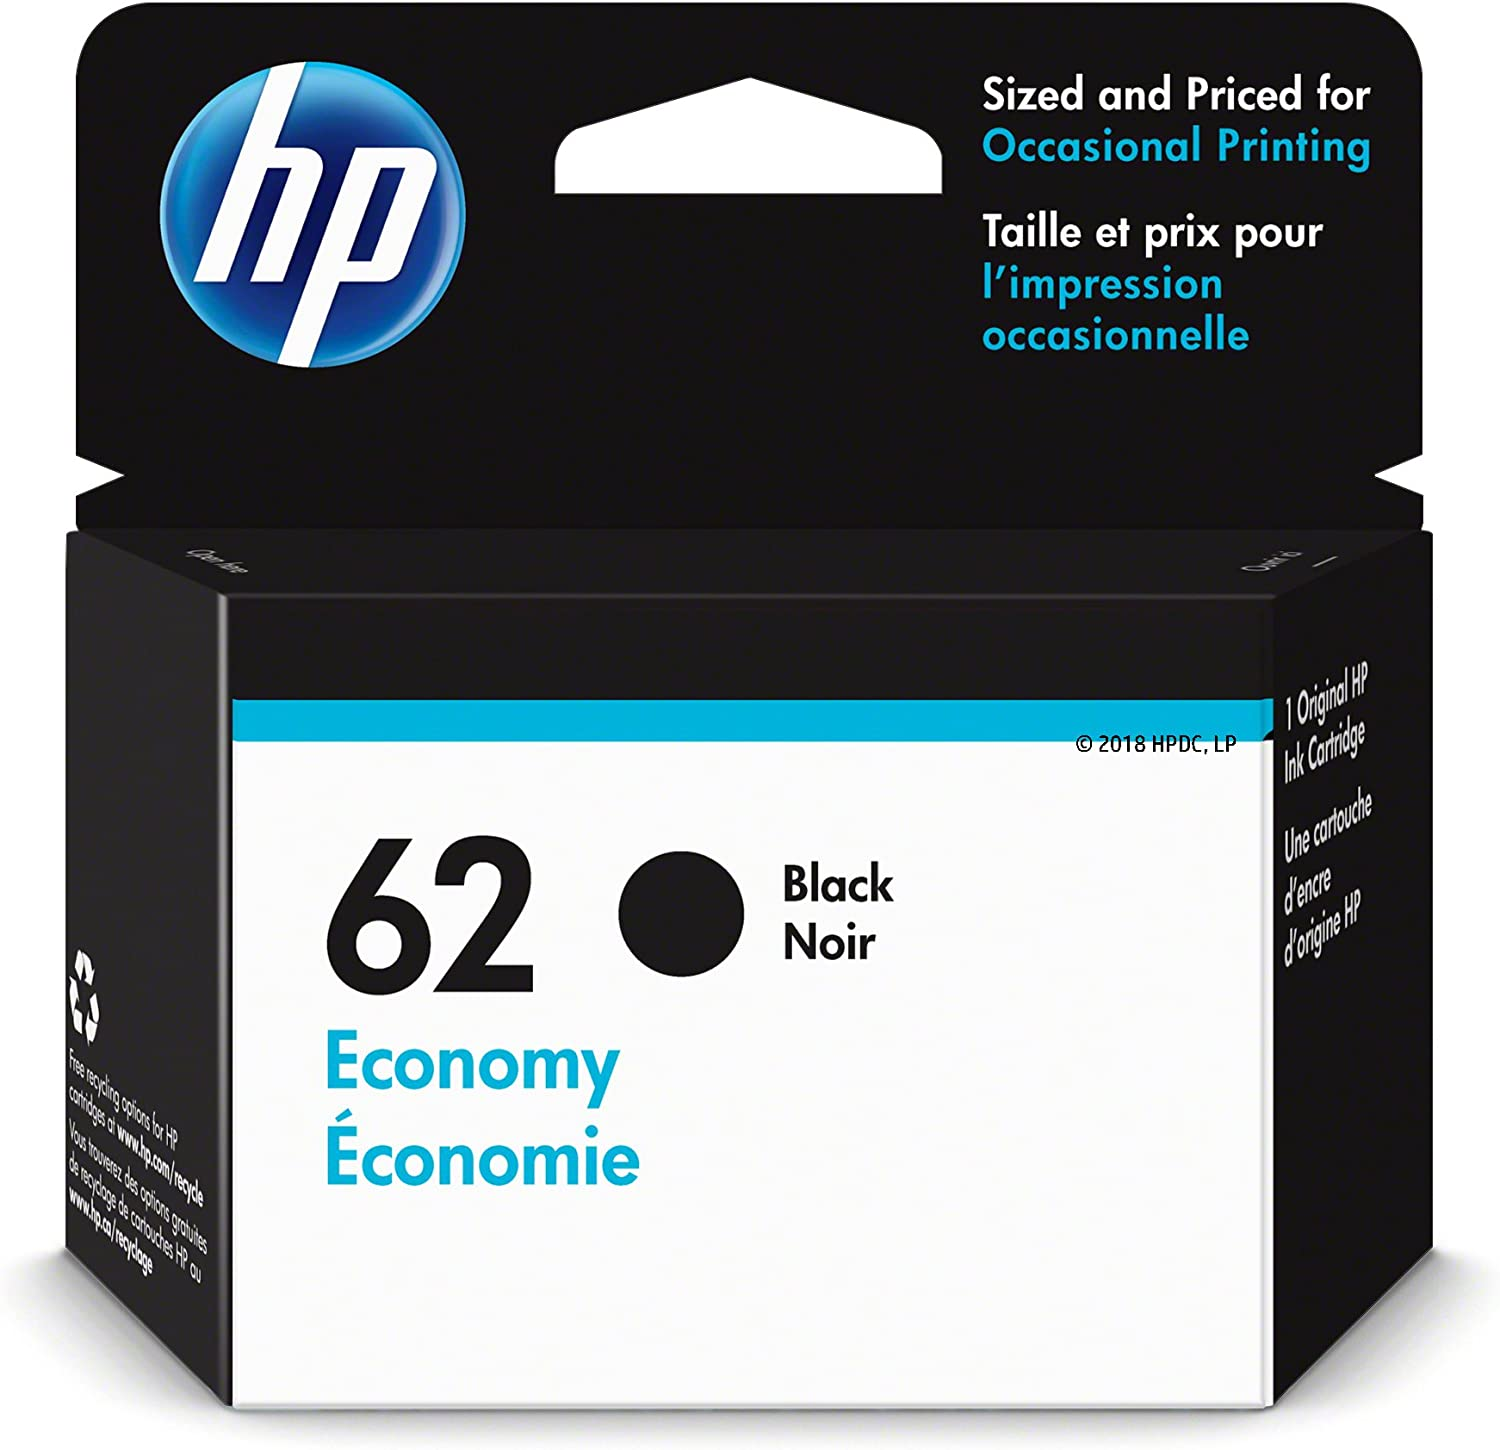 HP 62 | Ink Cartridge | Black | Economy Size | 1VV43AN | Discontinued by Manufacturer